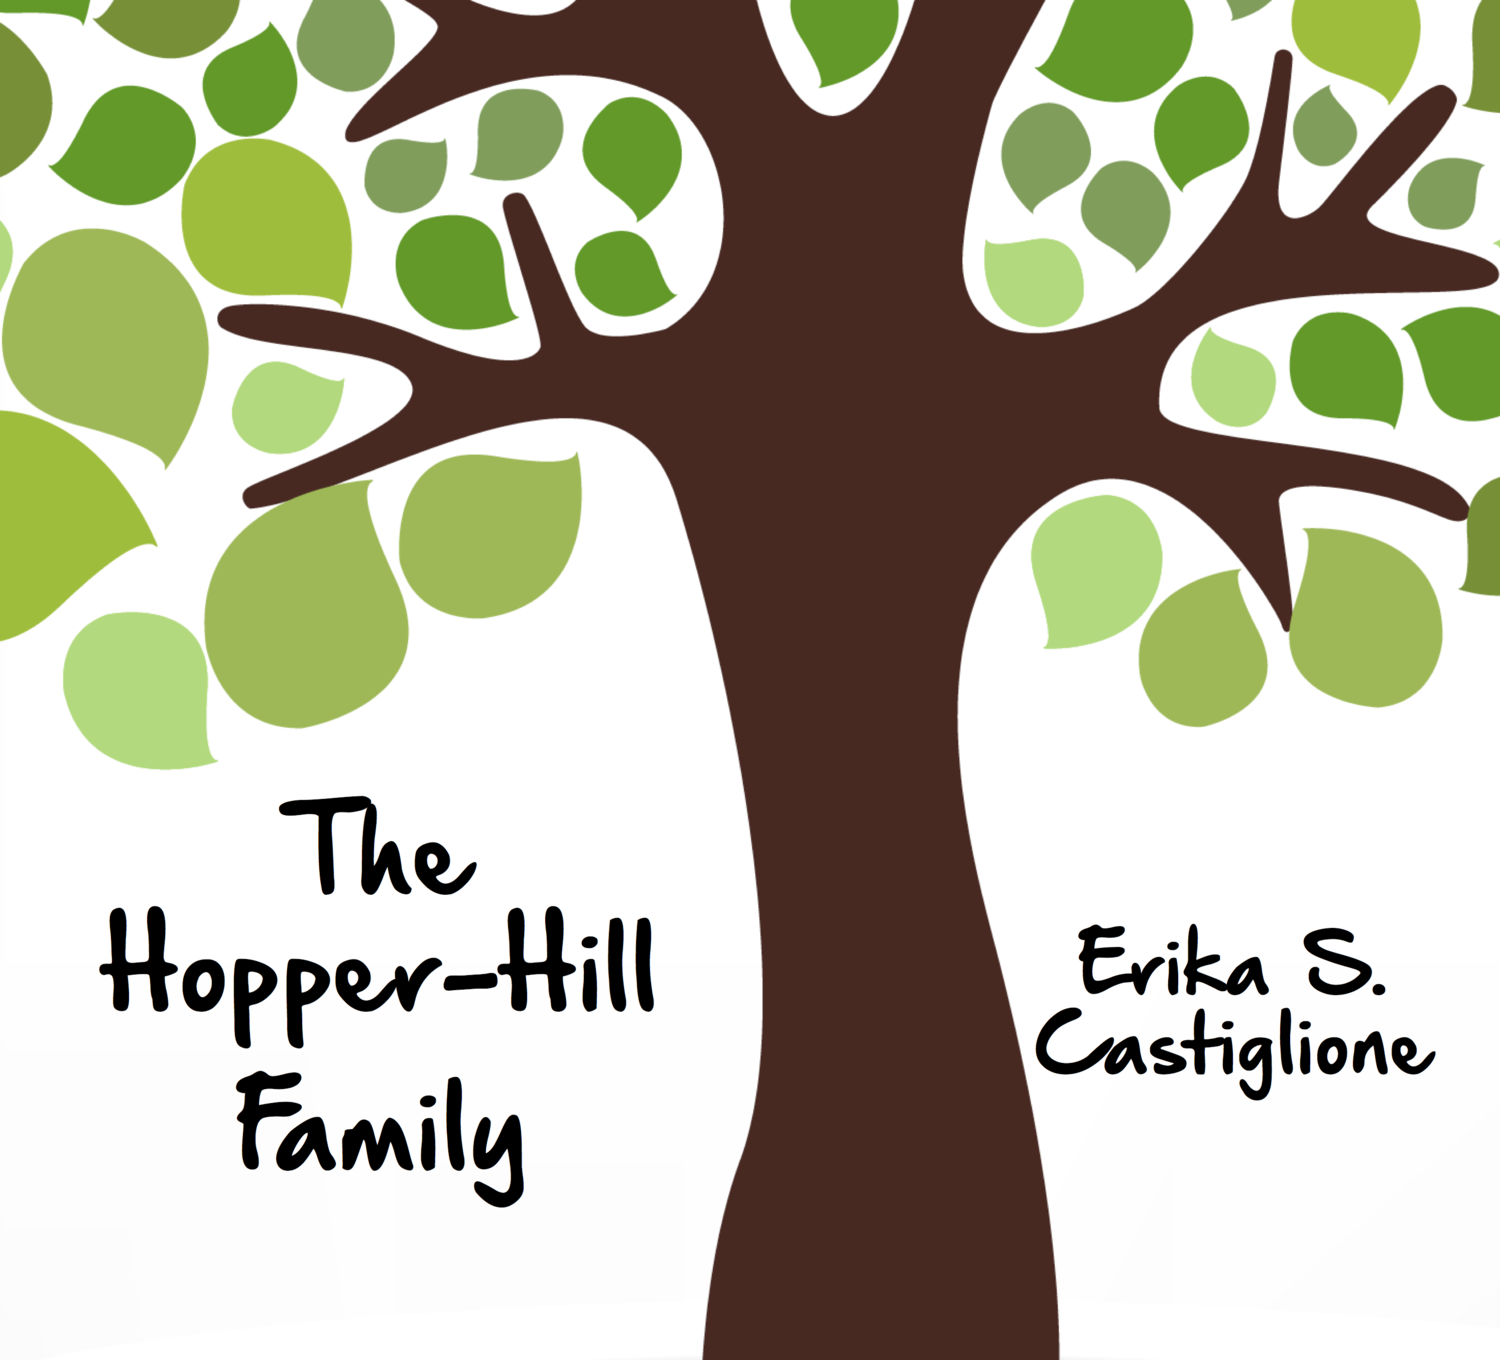 The Hopper-Hill Family